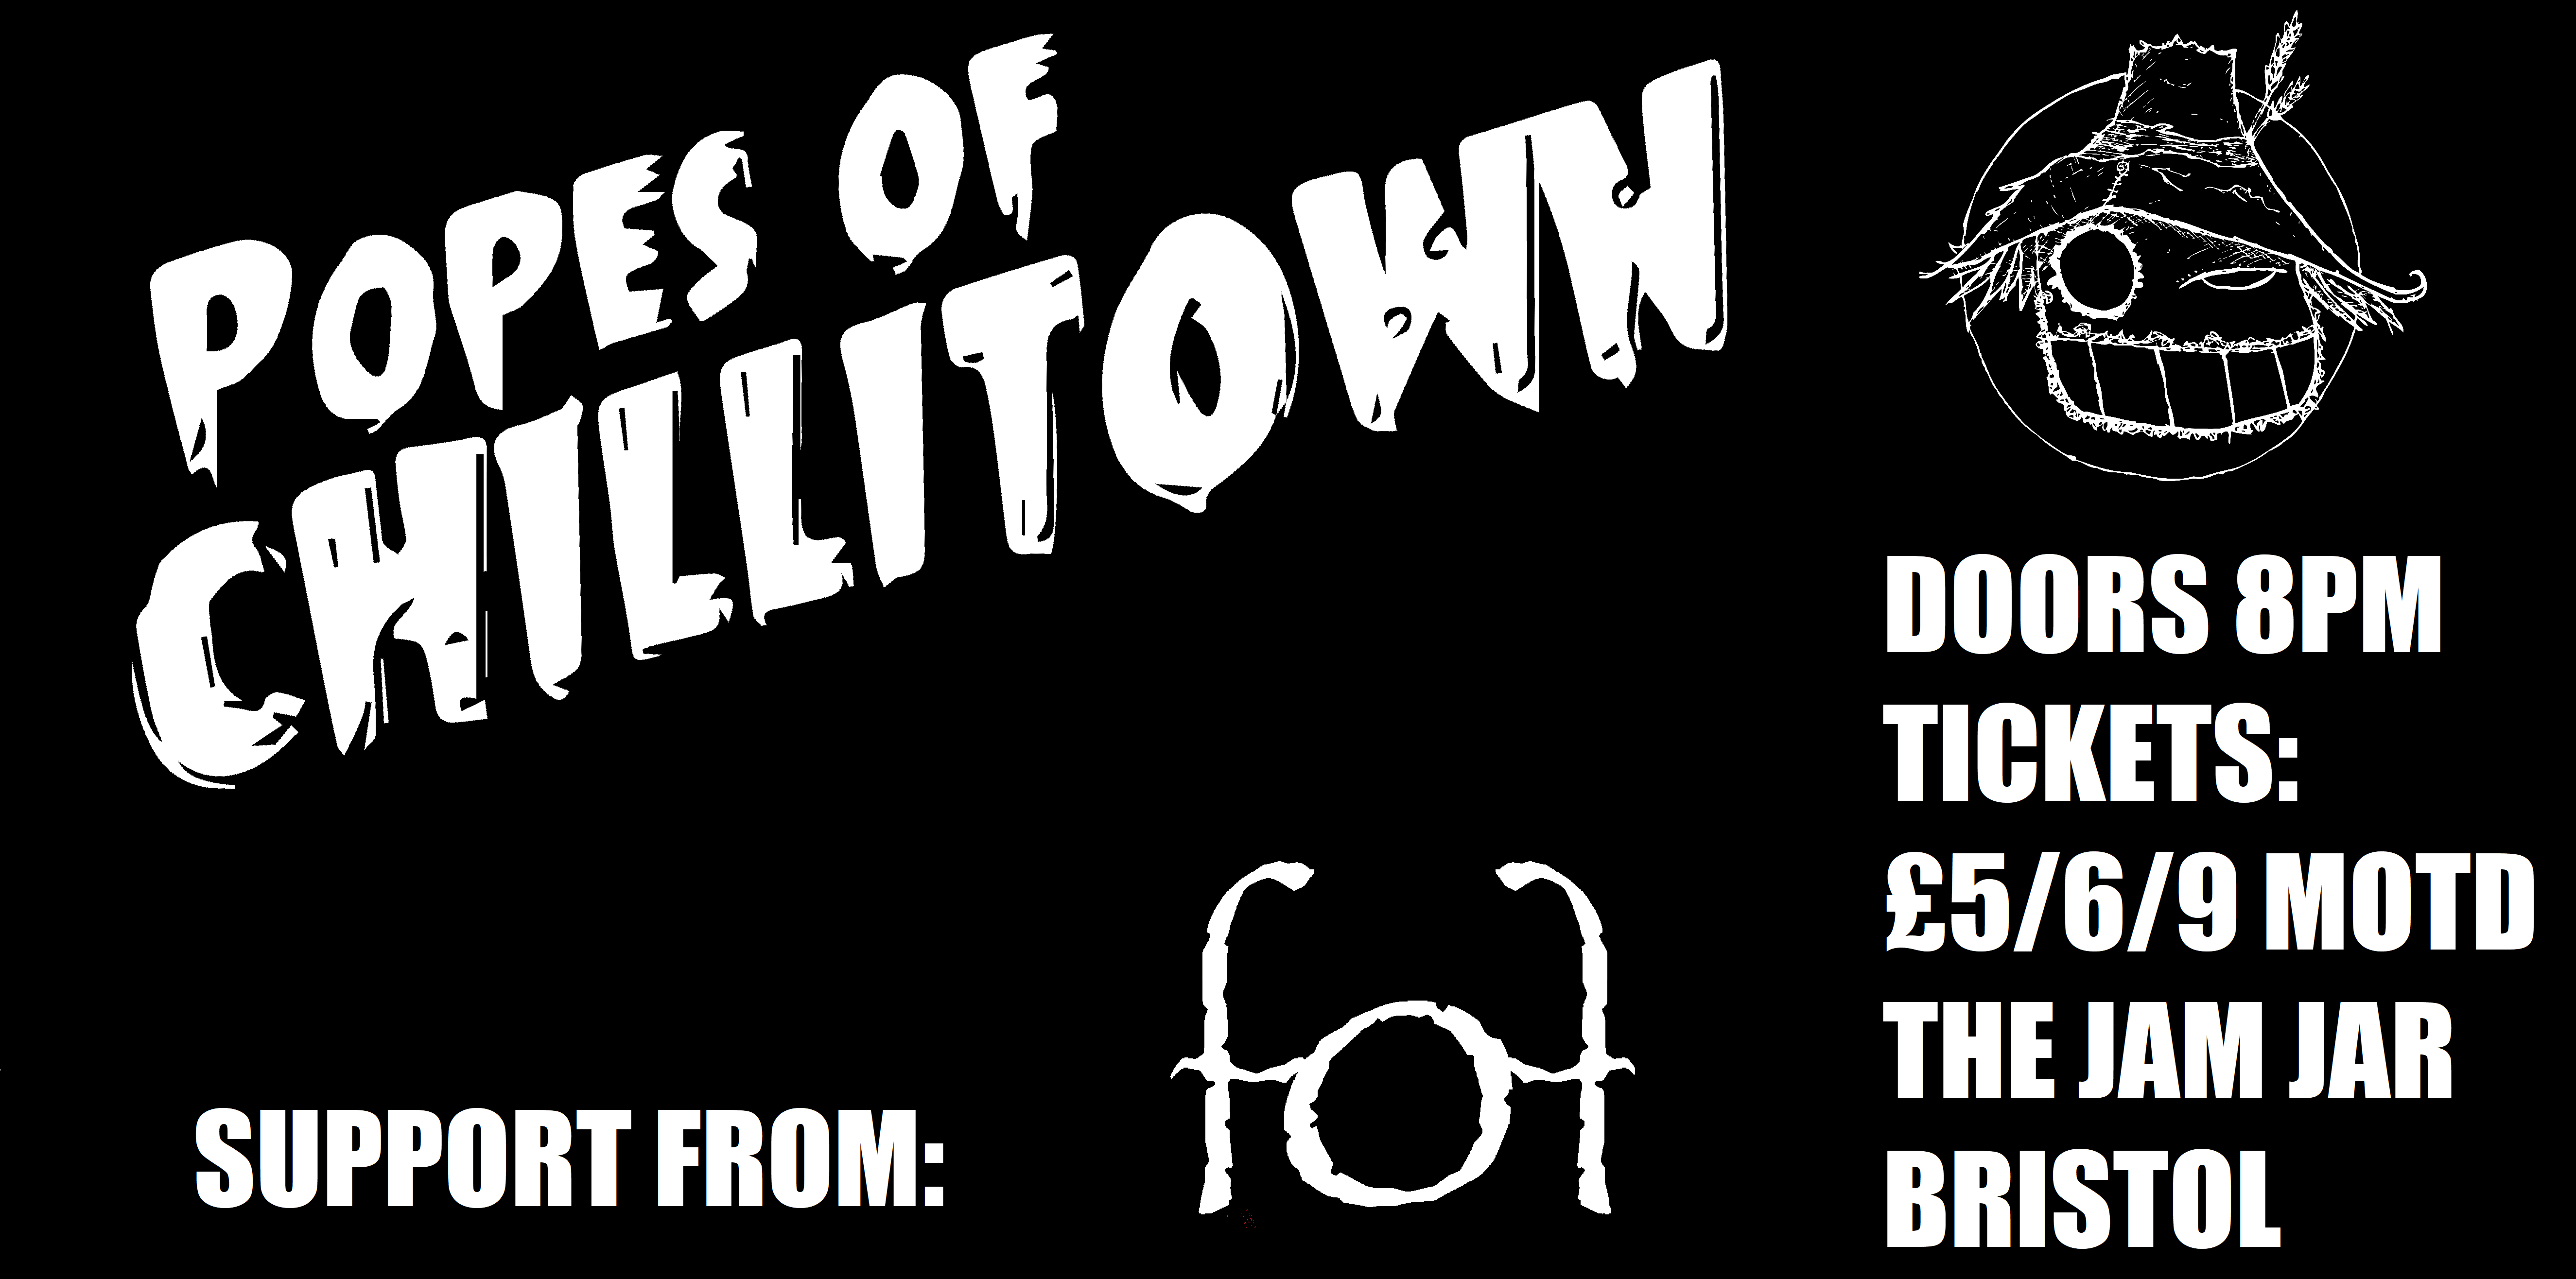 Popes of Chillitown & Forest of Fools